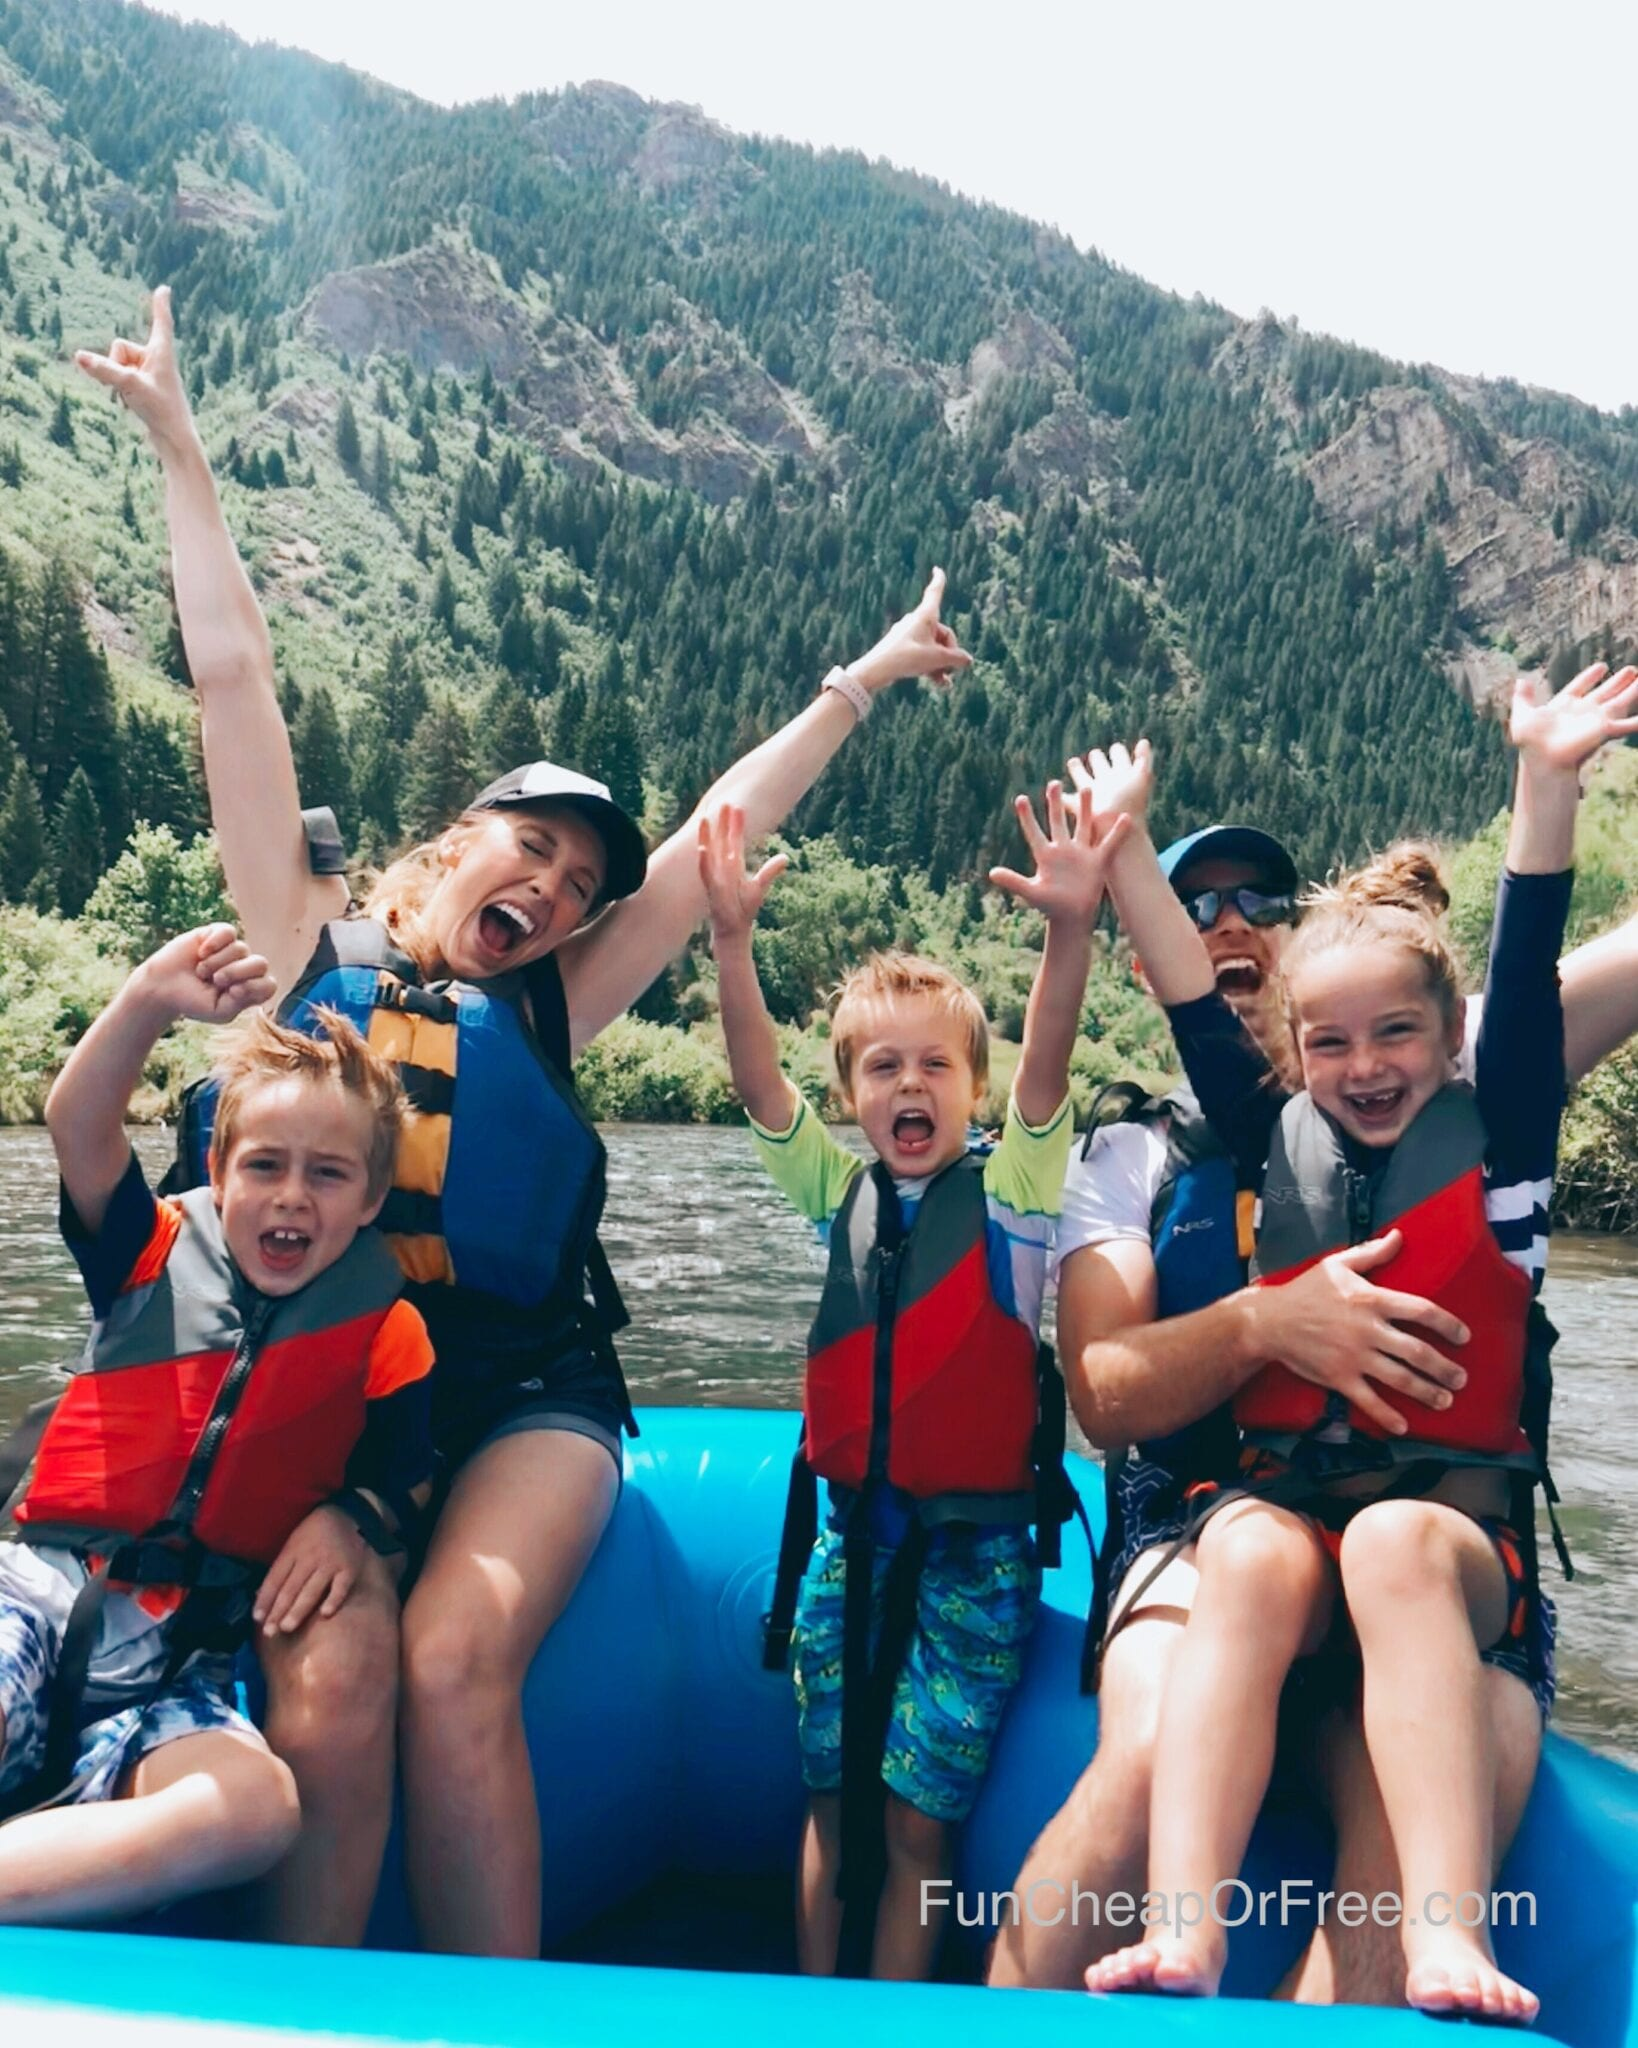 Family-friendly things to do in Utah Valley! Such good ideas! From FunCheapOrFree.com